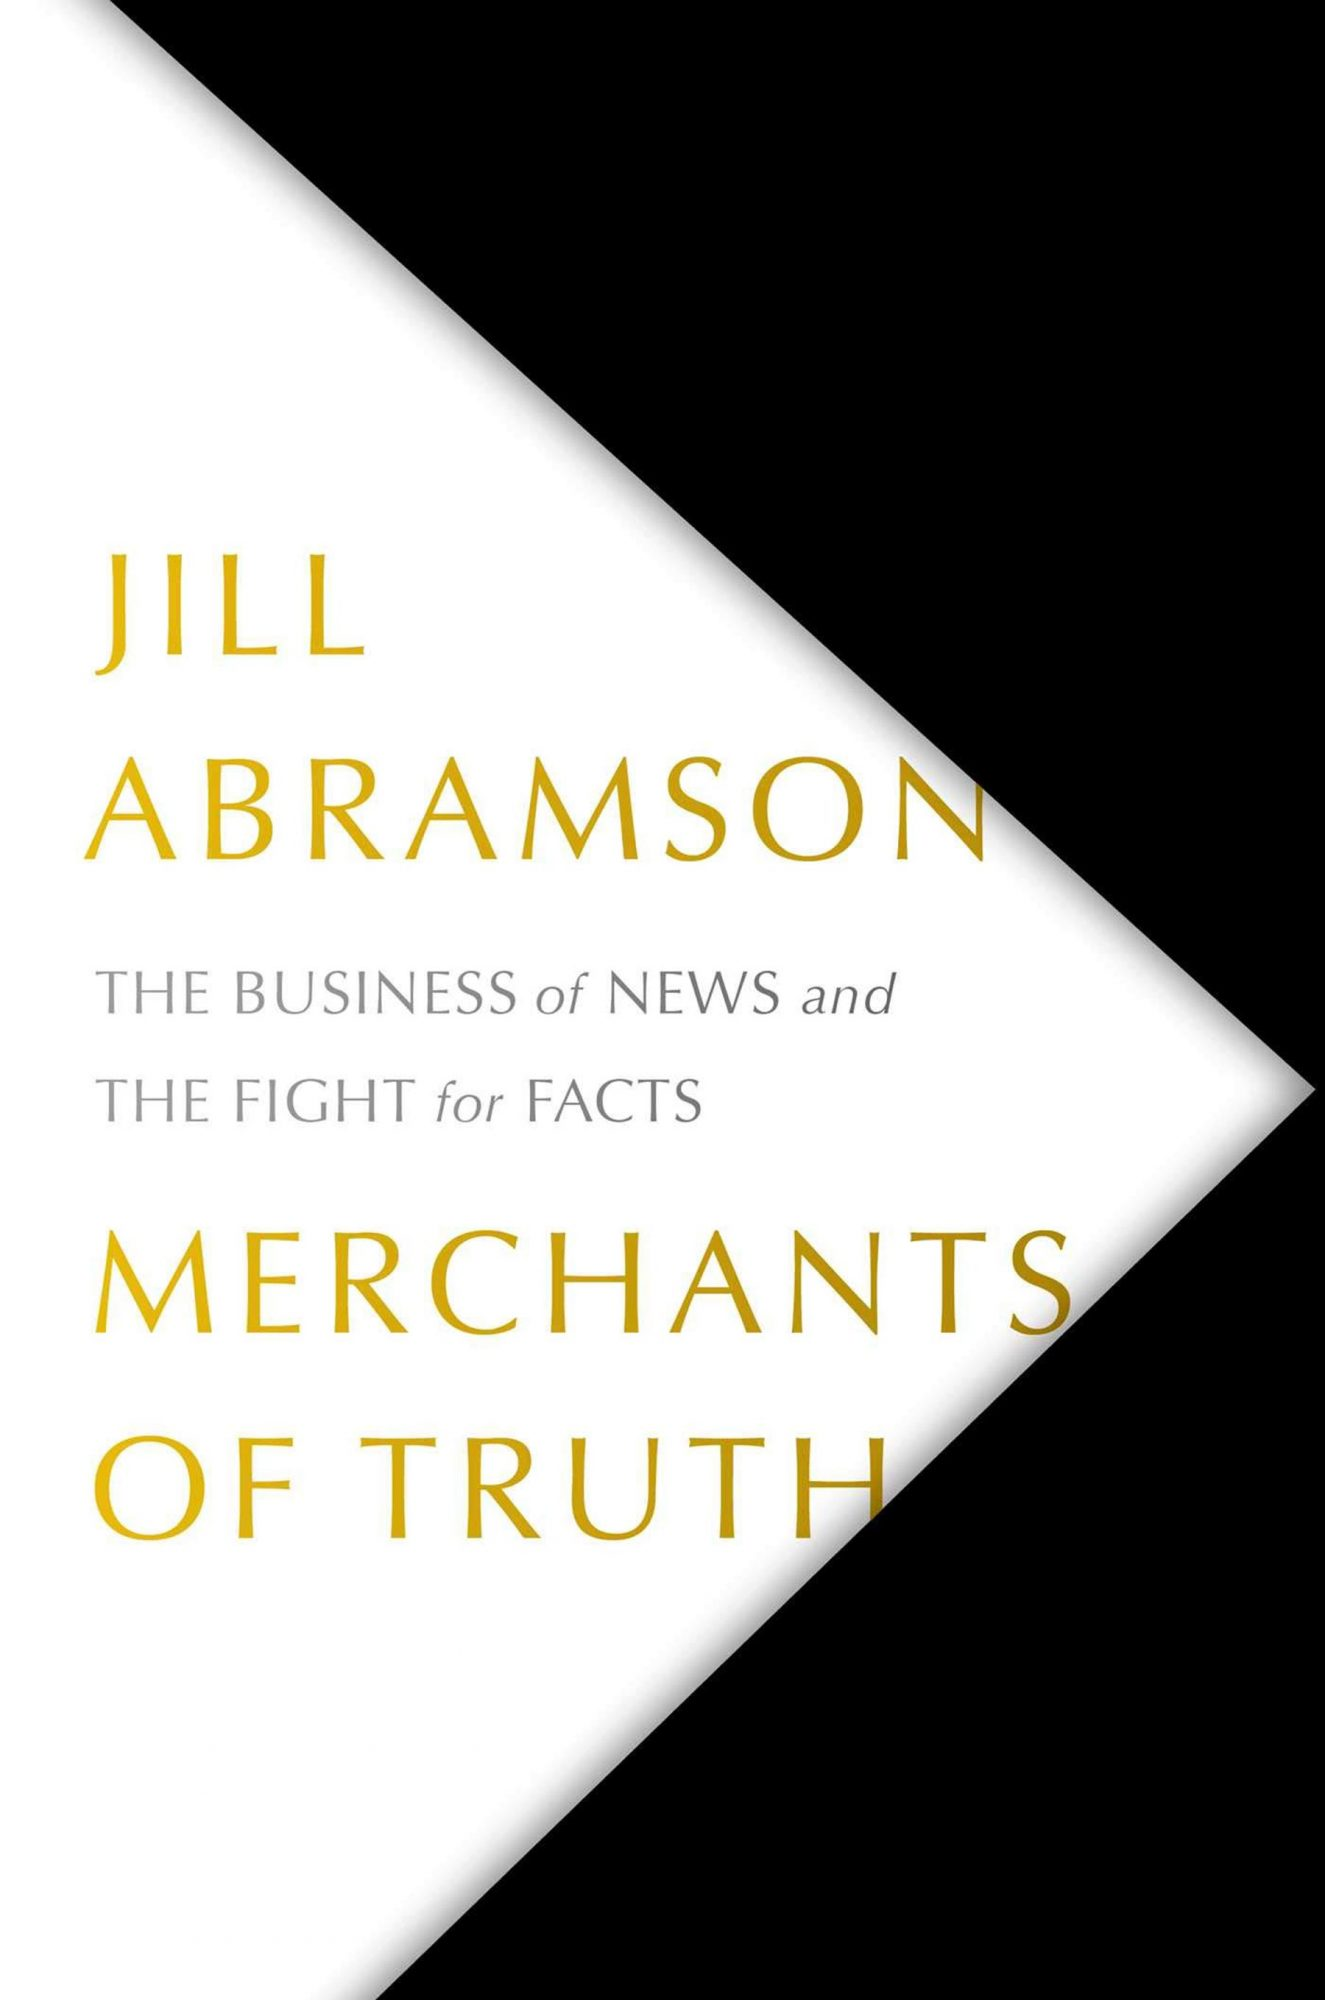 Jill Abramson, Merchants of TruthPublisher: Simon & Schuster